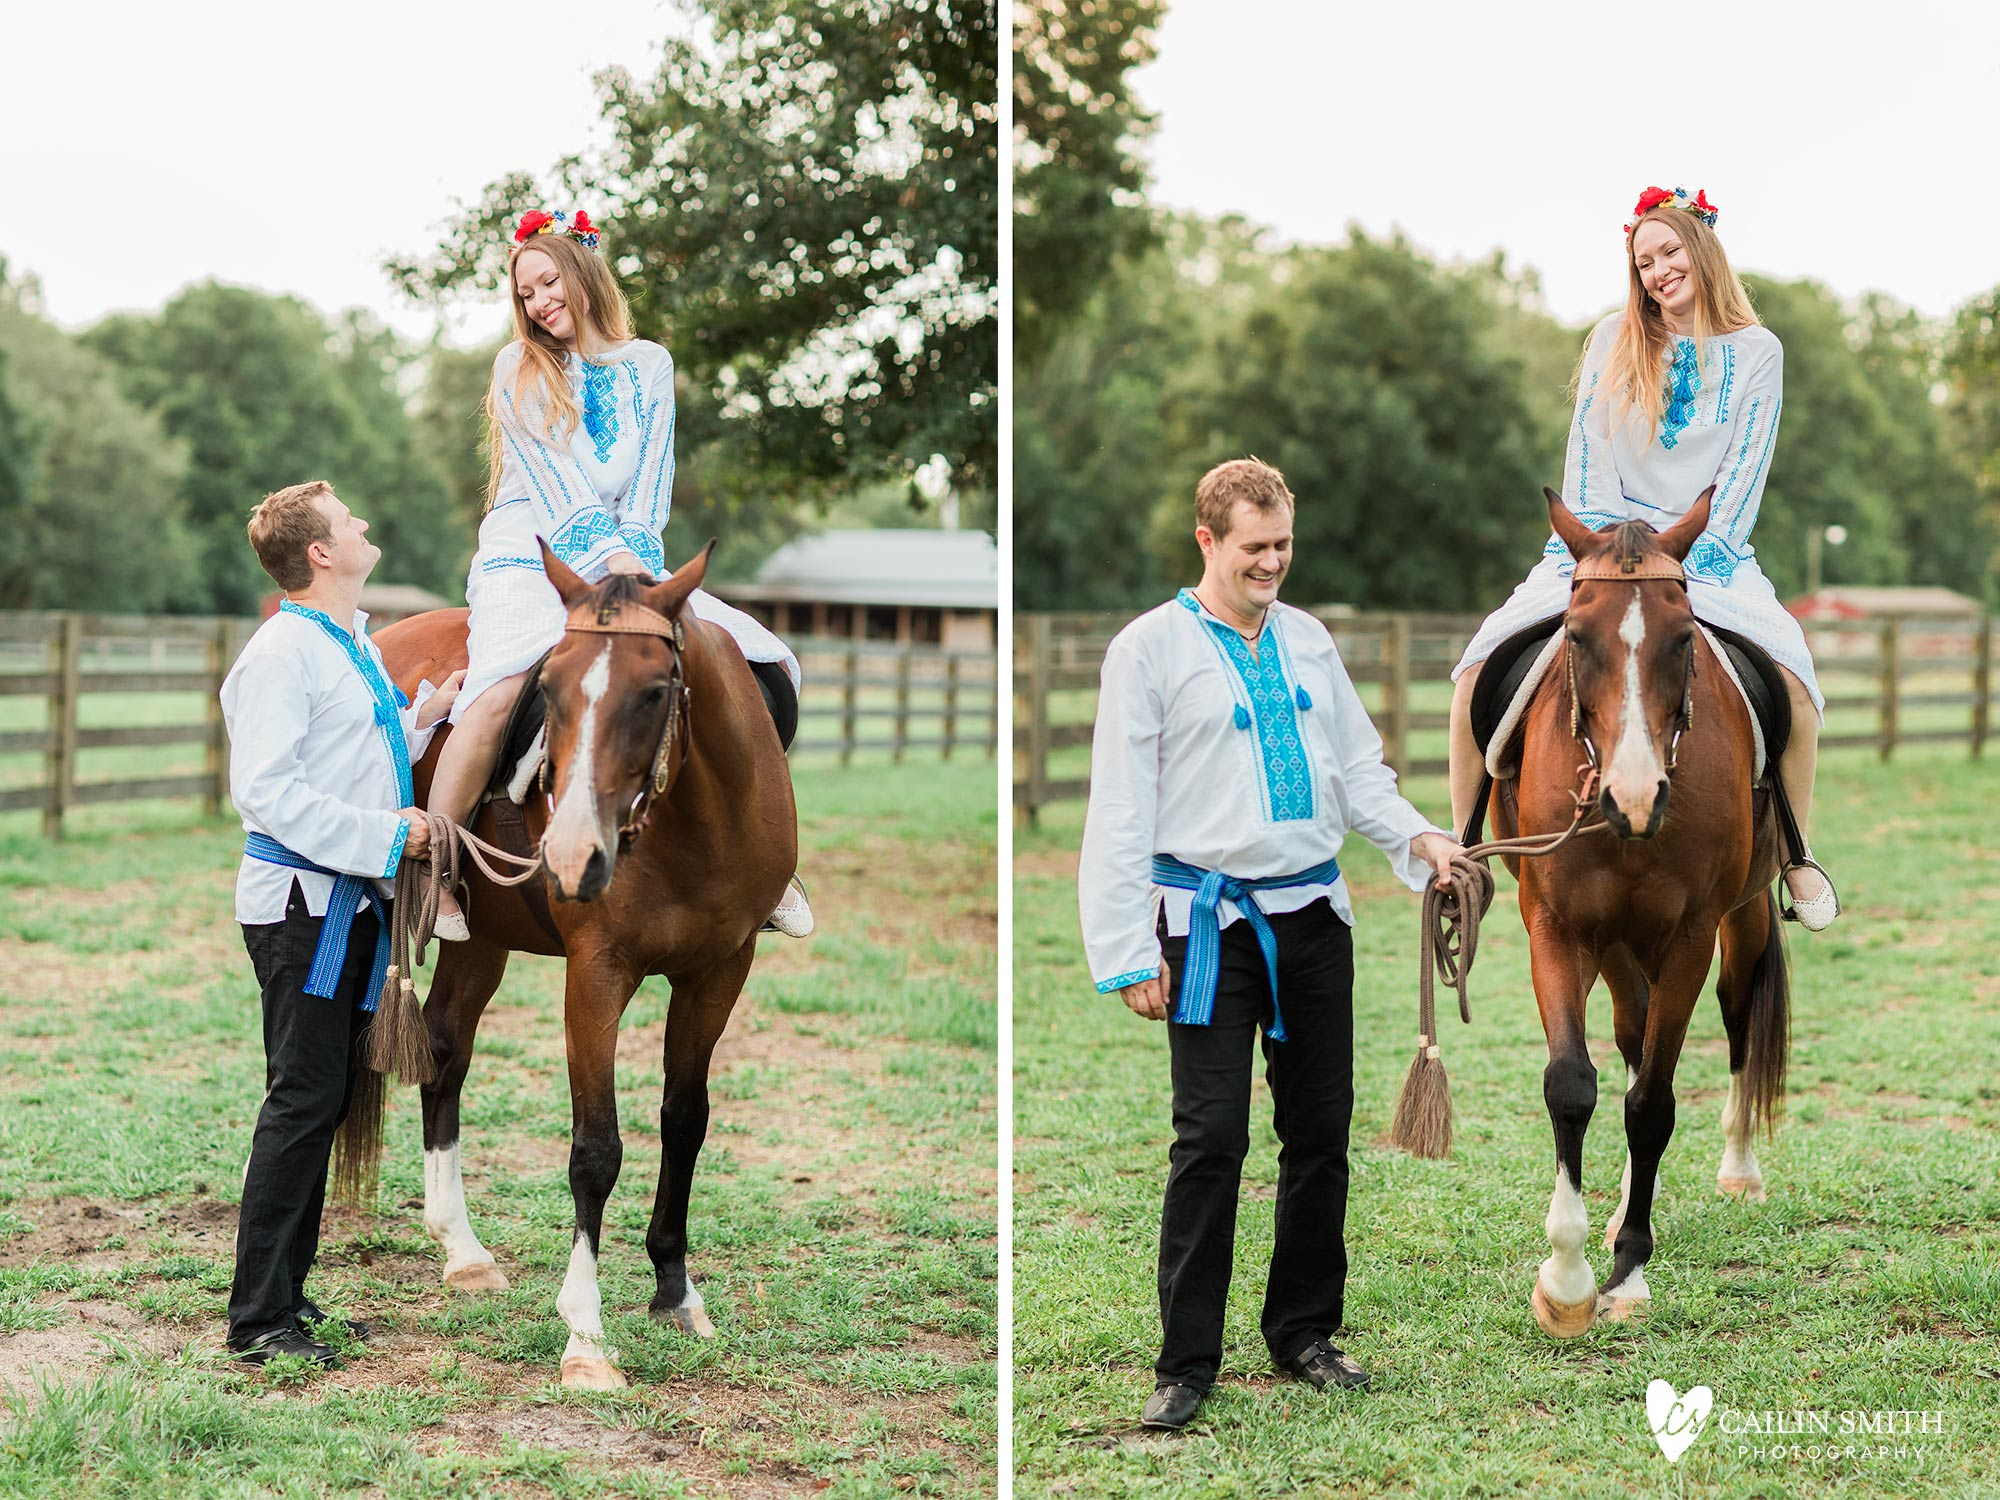 Tetiana_James_Horse_Engagement_Photography_0019.jpg